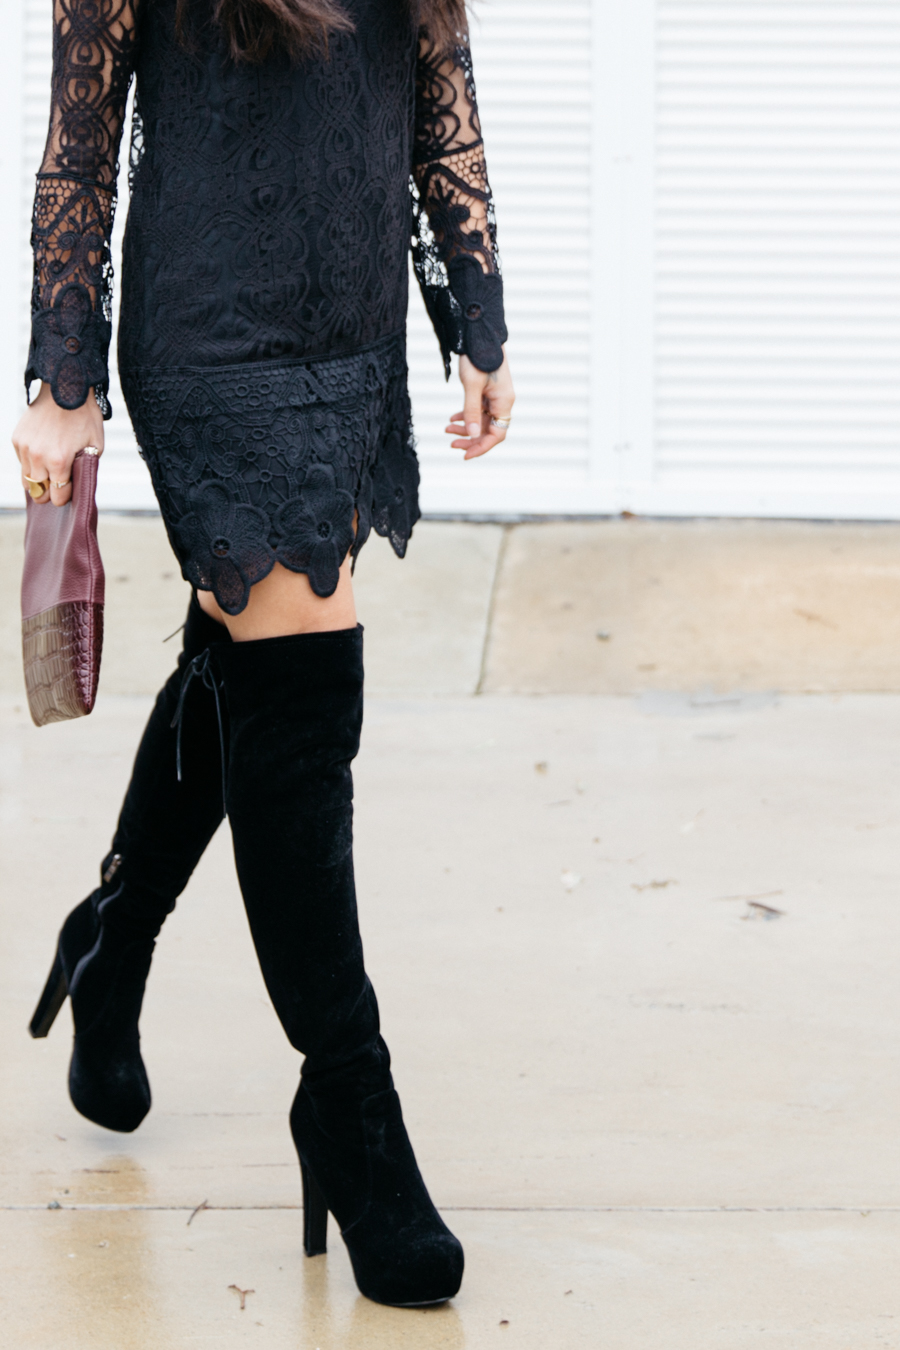 How to wear over the knee boots.